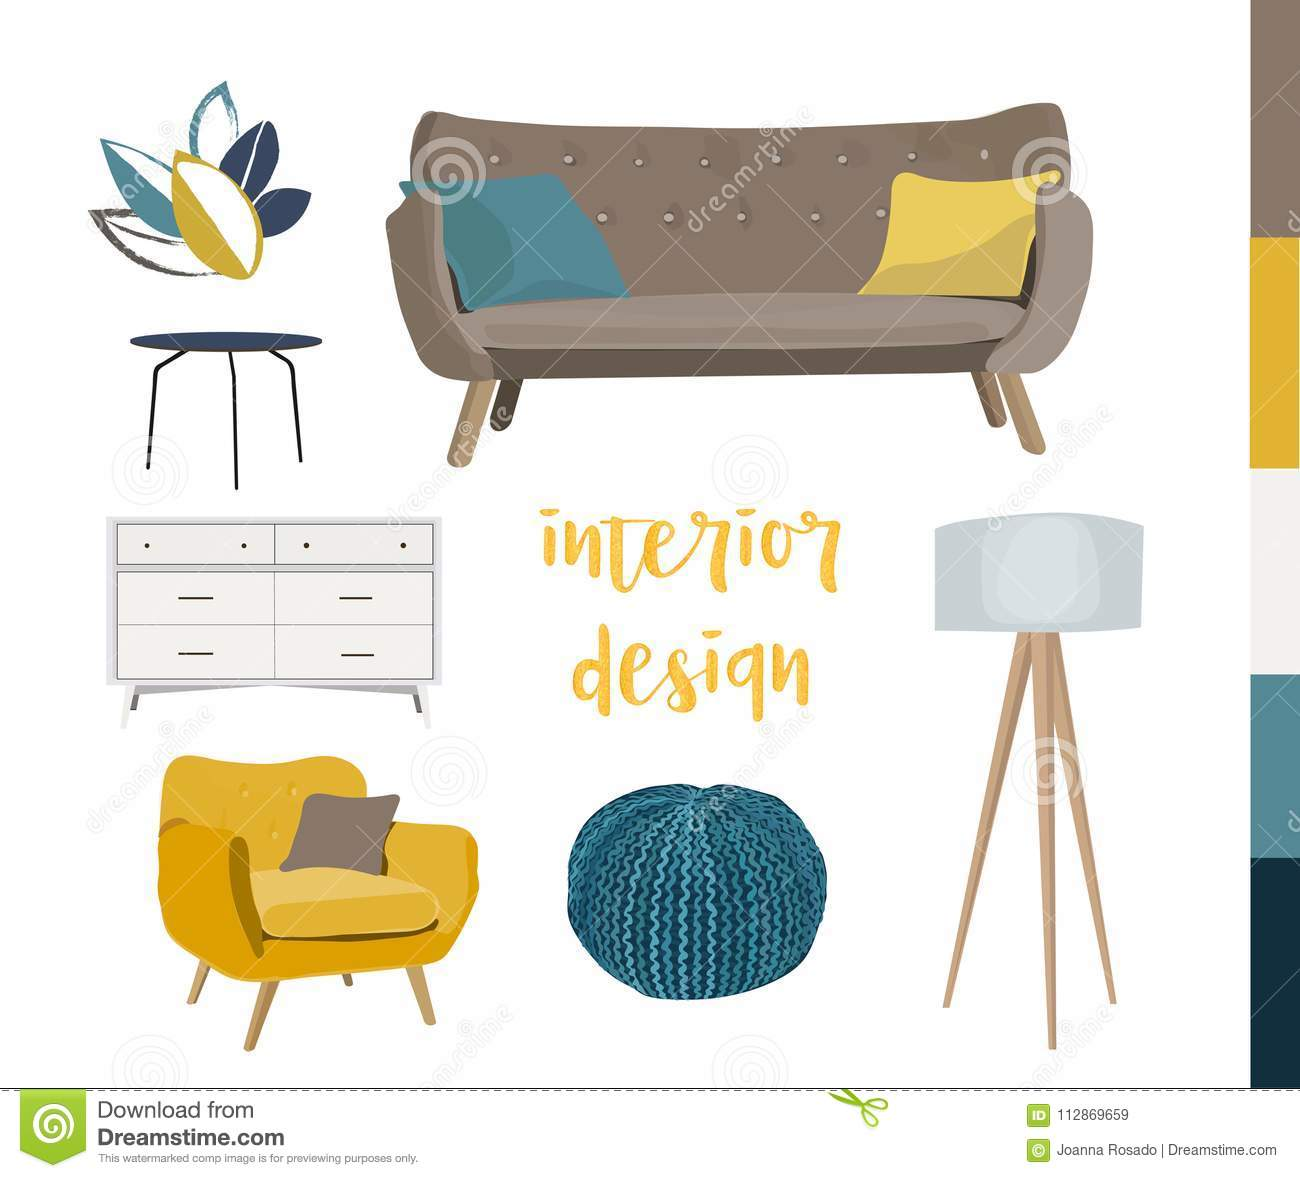 Image of: Vector Interior Design Sketch Illustration Living Room Furniture Mid Century Modern Stock Vector Illustration Of Knitted Concept 112869659